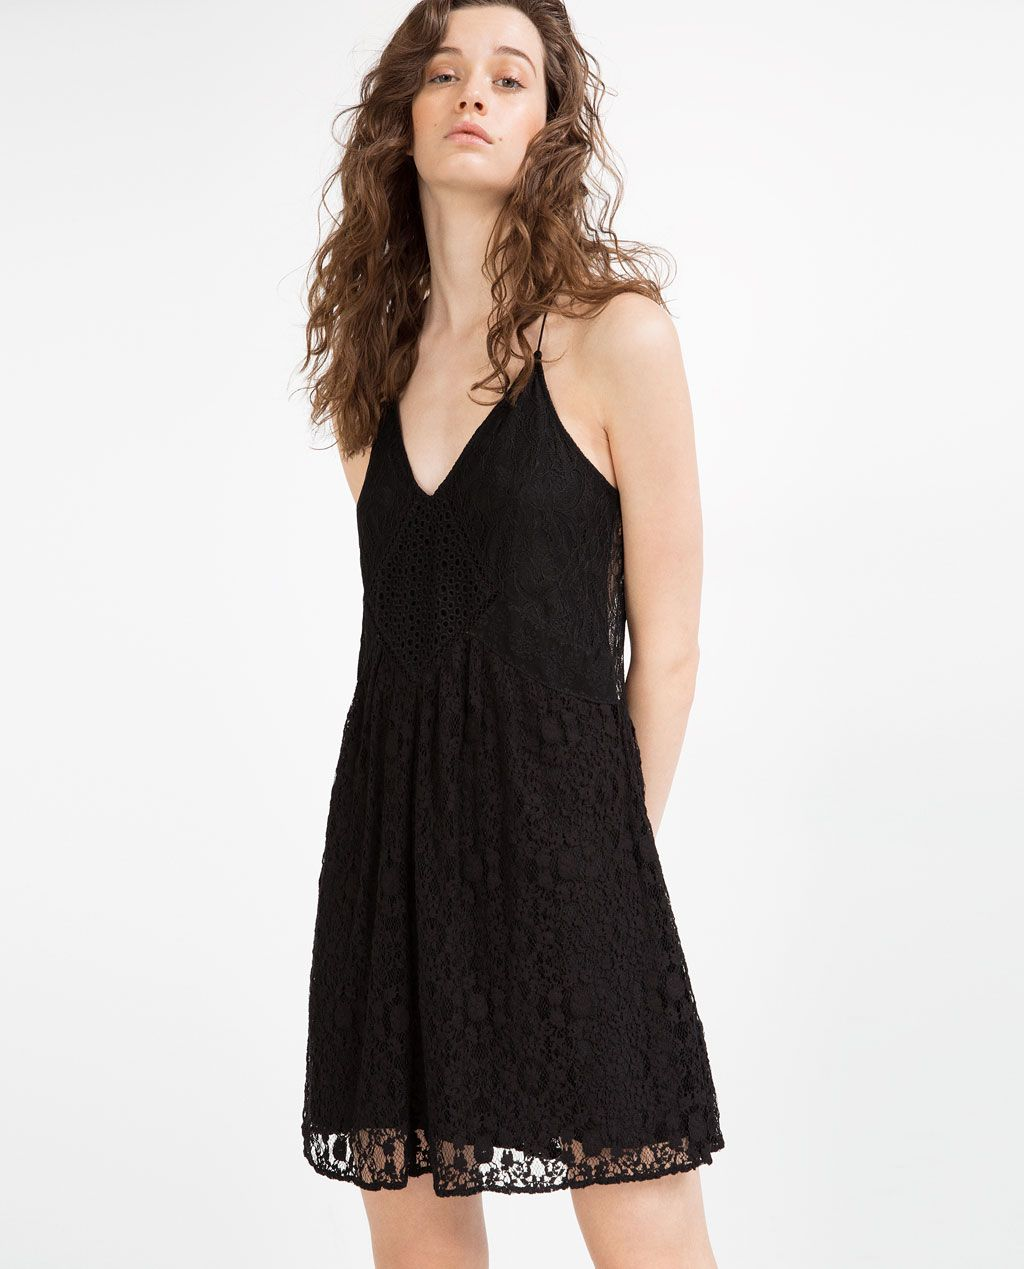 Image of contrast lace dress from zara street style wannabe